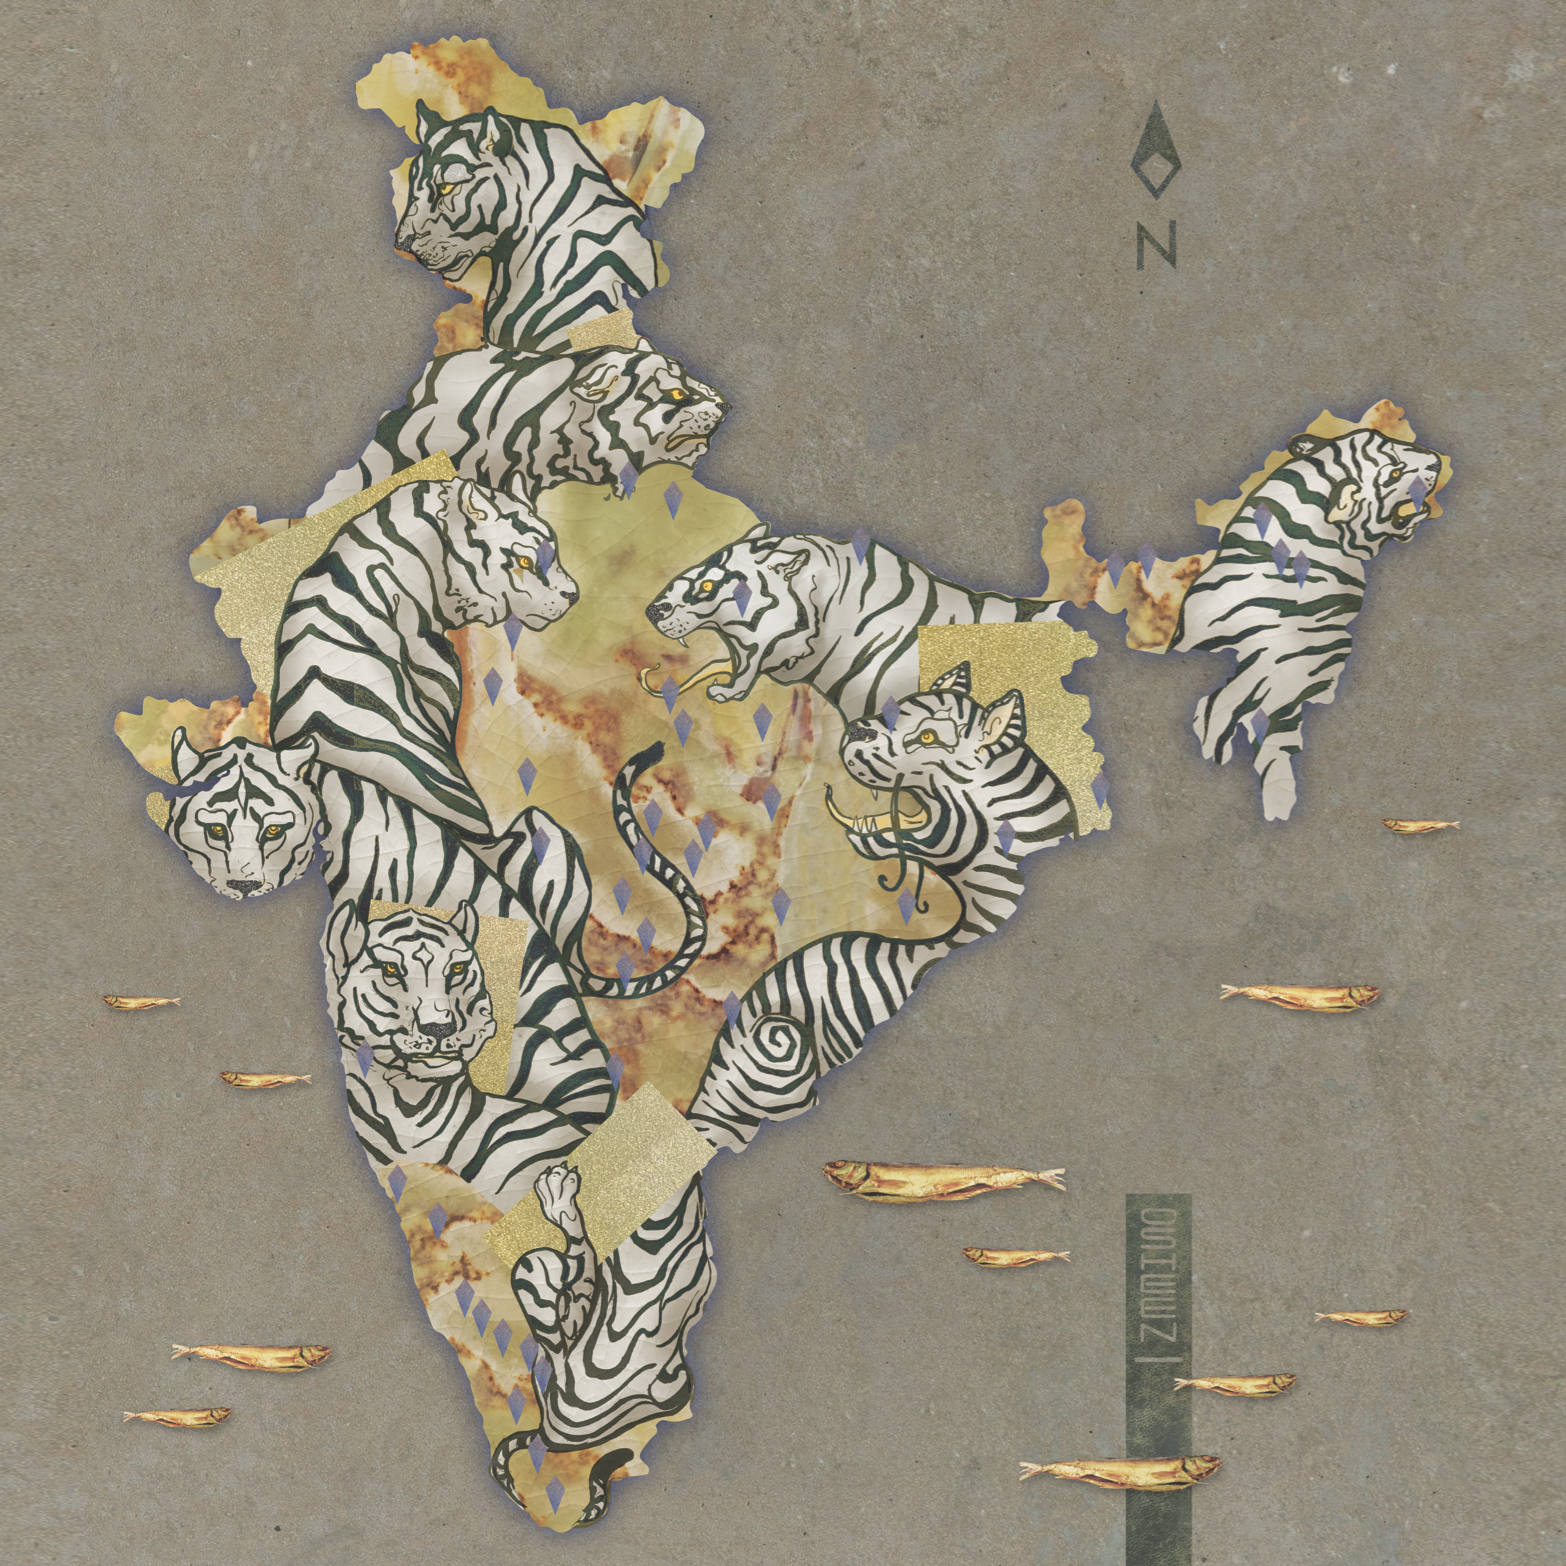 """1973 : """"Project Tiger - launched by the Government of India in April 1973 as an effort to preserve and protect the royal animal, a few months after this majestic beast was declared the National Animal of India!  The Tiger as our National Animal symbolizes the power, strength, beauty, elegance, alertness, intelligence and endurance of the nation. And thus, it's symbolic and existential significance was realised in the year 1973. I would like to depict this through my art."""" ~ Ishaan Bharat"""